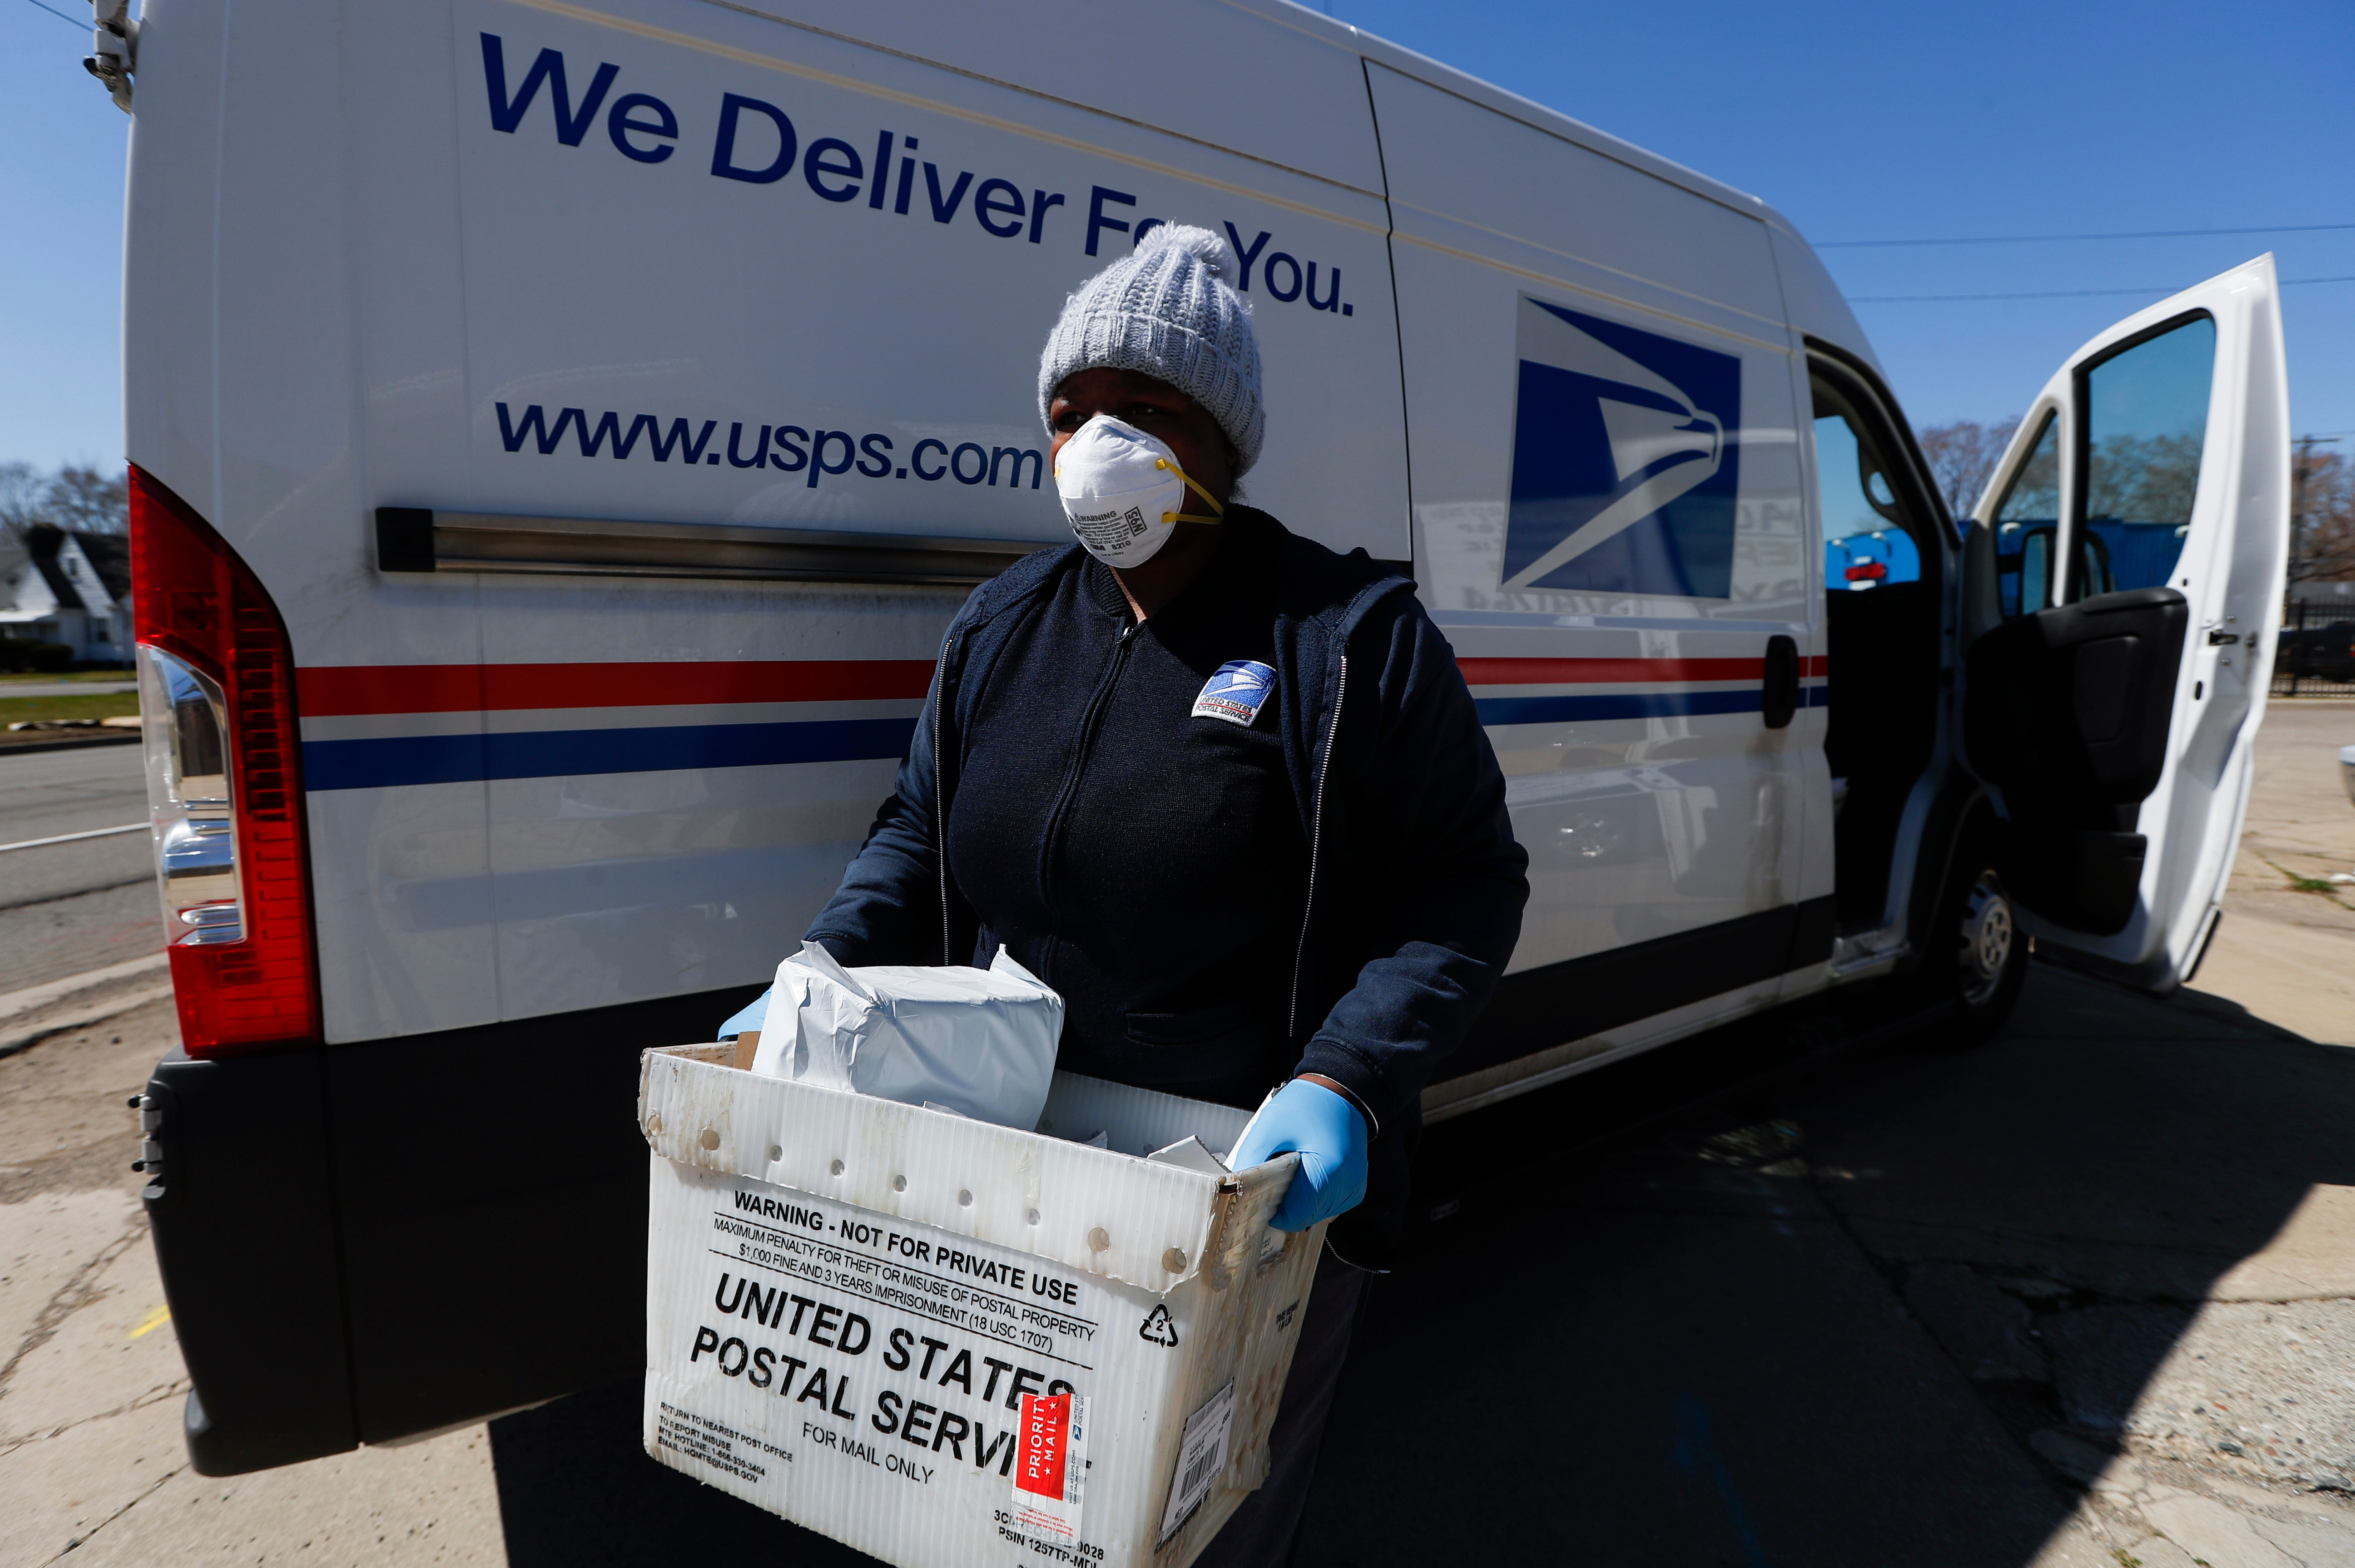 Postal Service to consolidate postal districts, offer early retirement to non-union workers - Fox Business